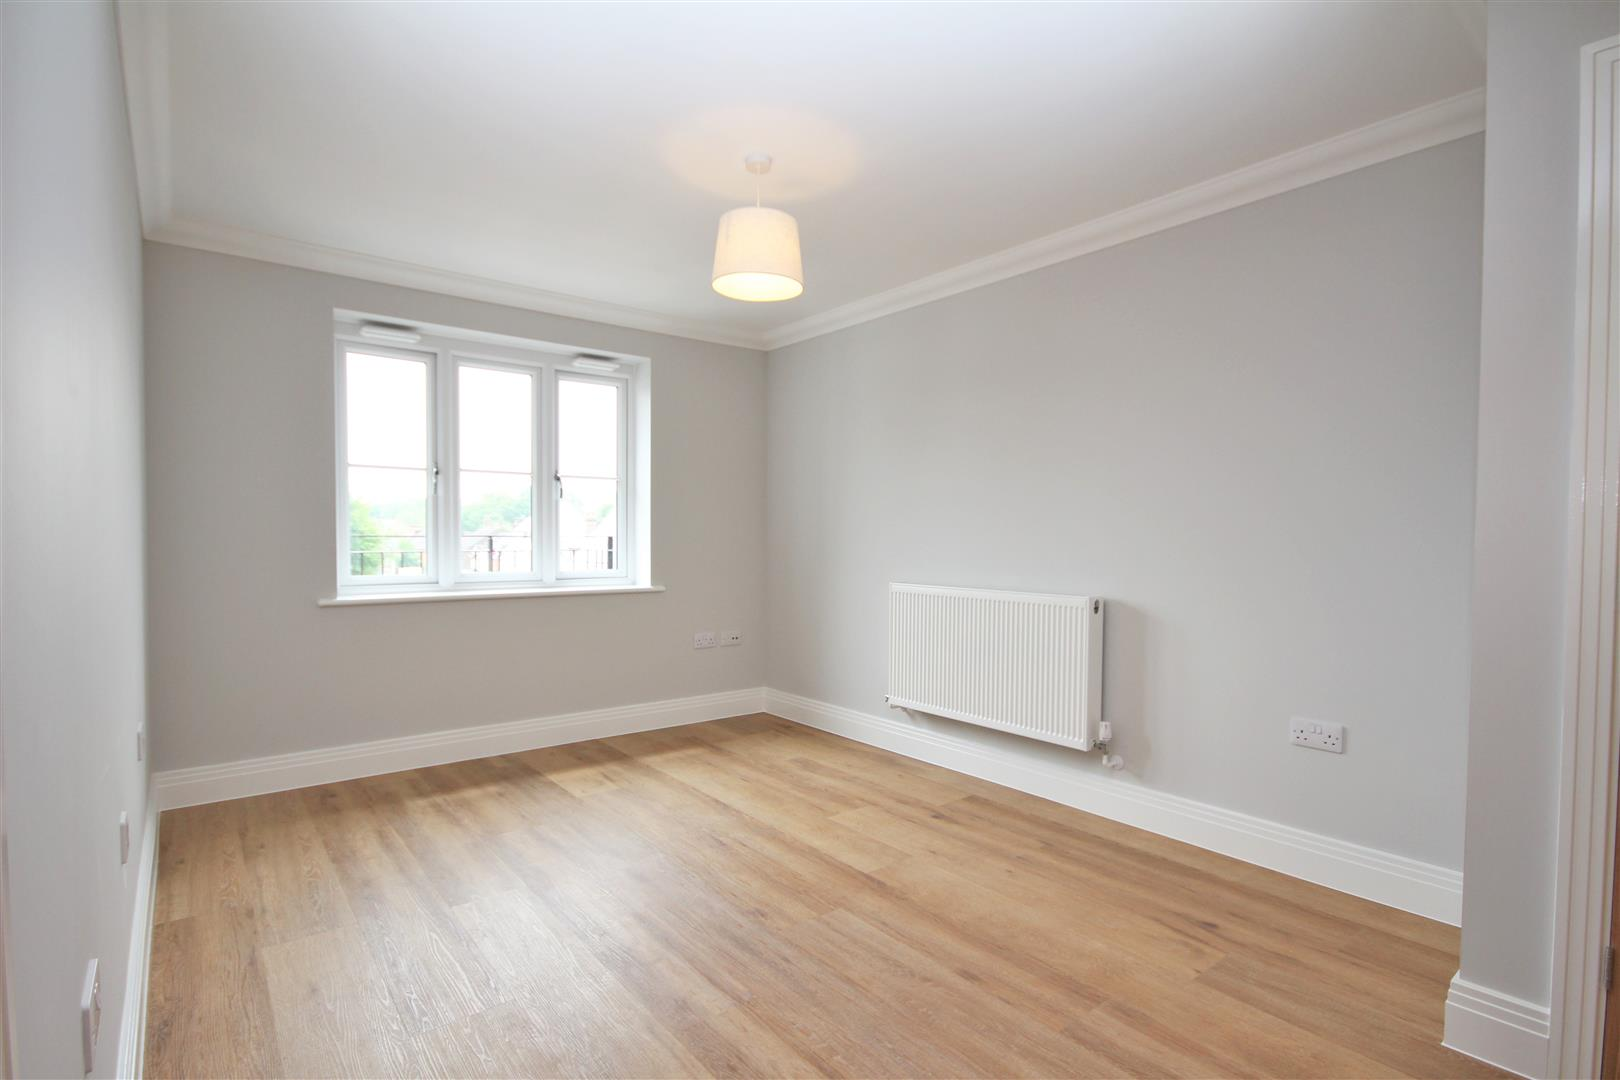 2 bed Flat to rent - (Property Image 7)